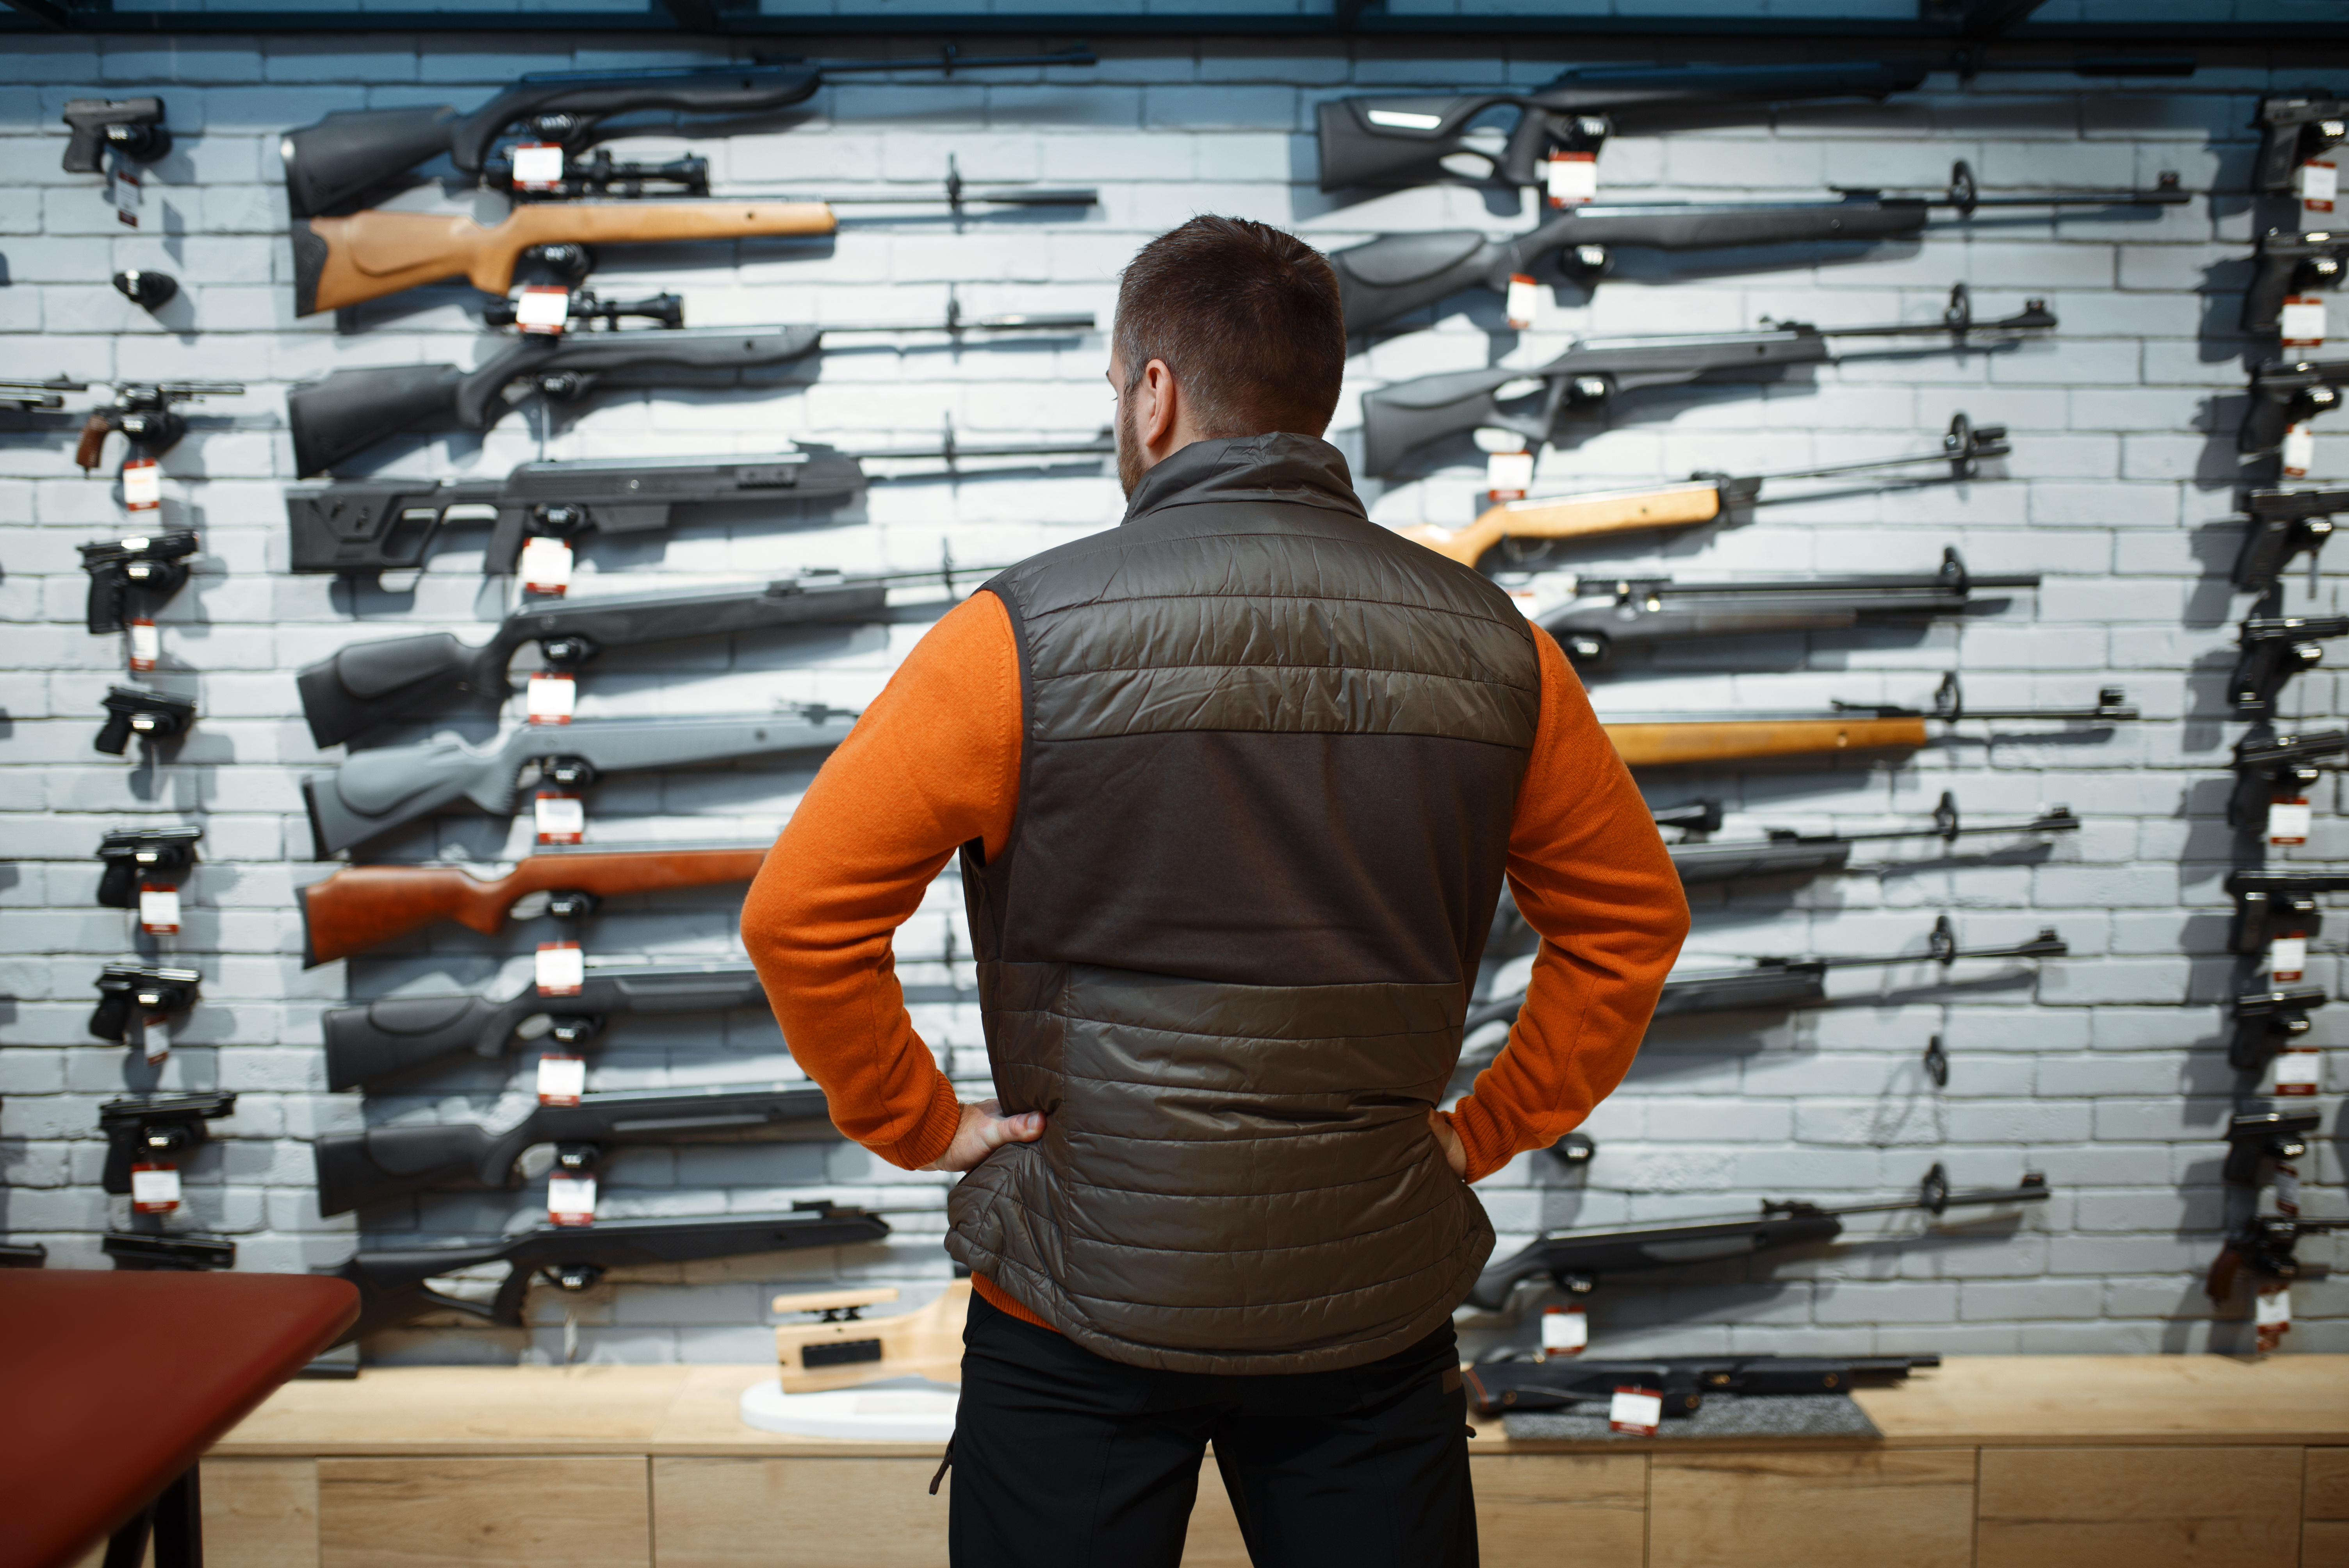 man looking at rifles in a store